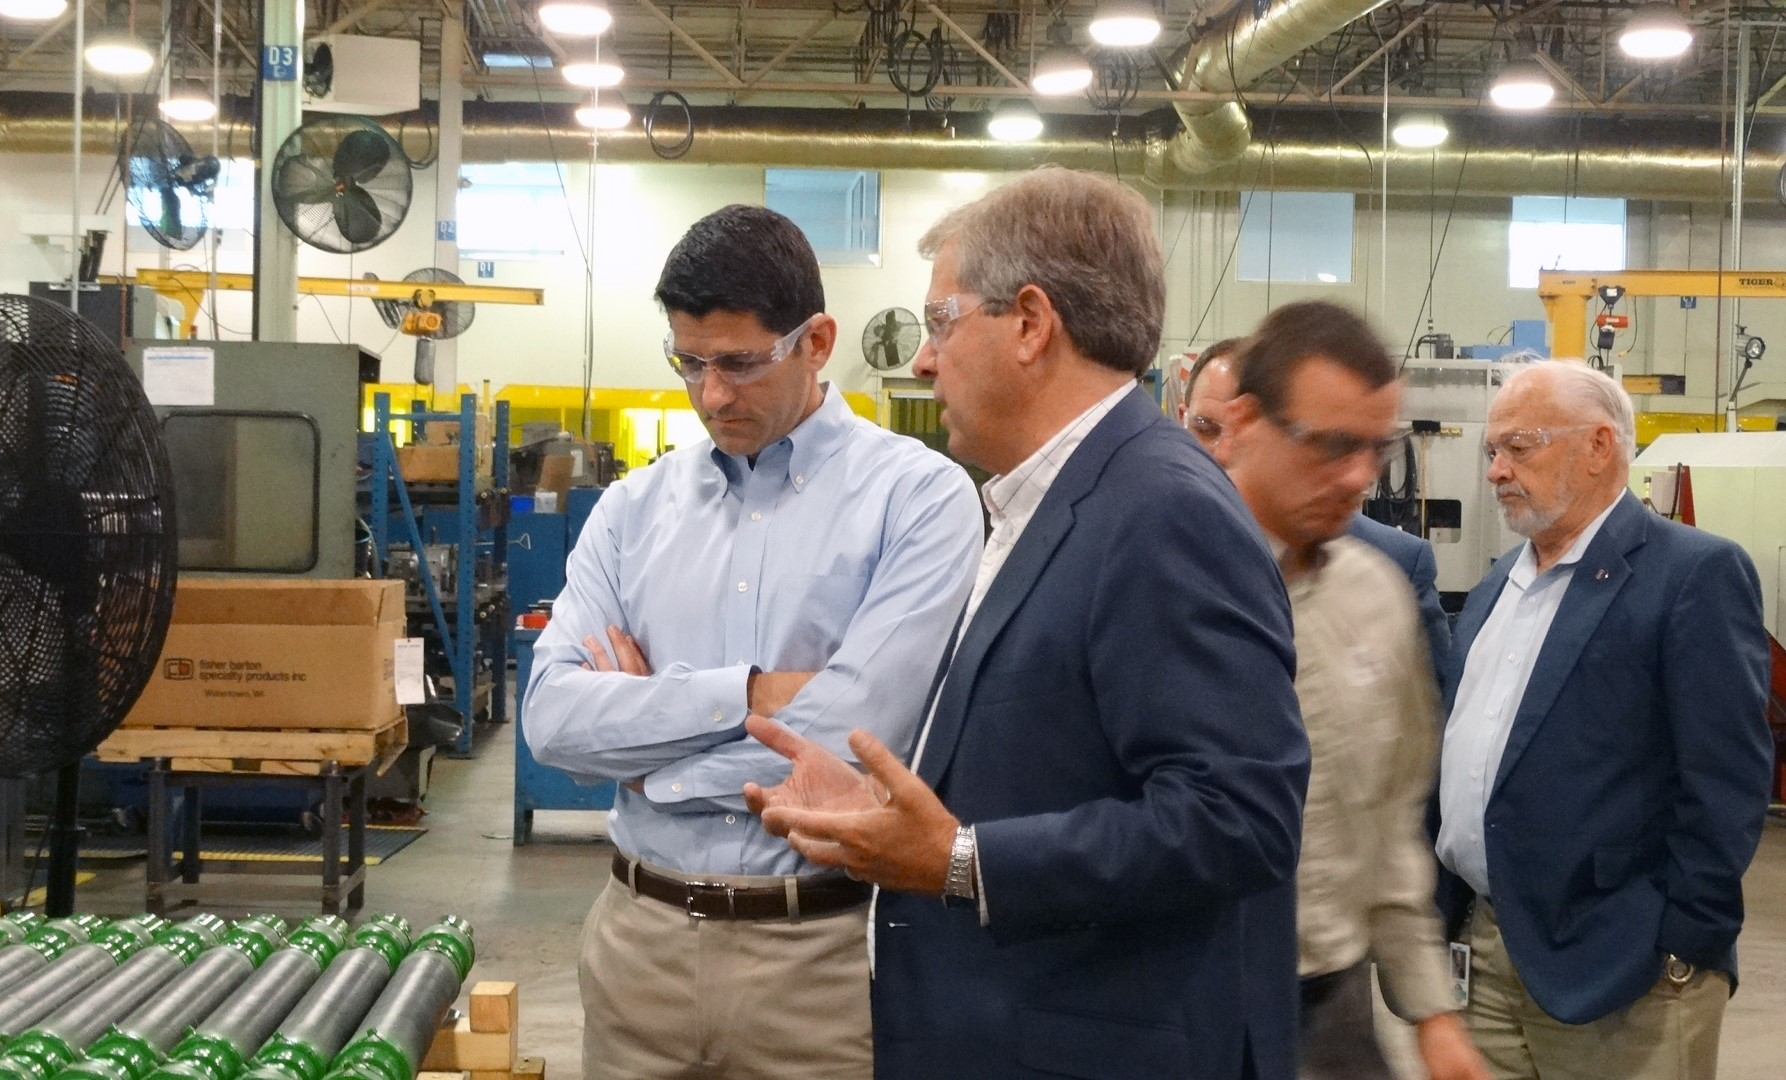 PAUL RYAN VISITS ALLIS ROLLER TO DISCUSS WORKFORCE DEVELOPMENT